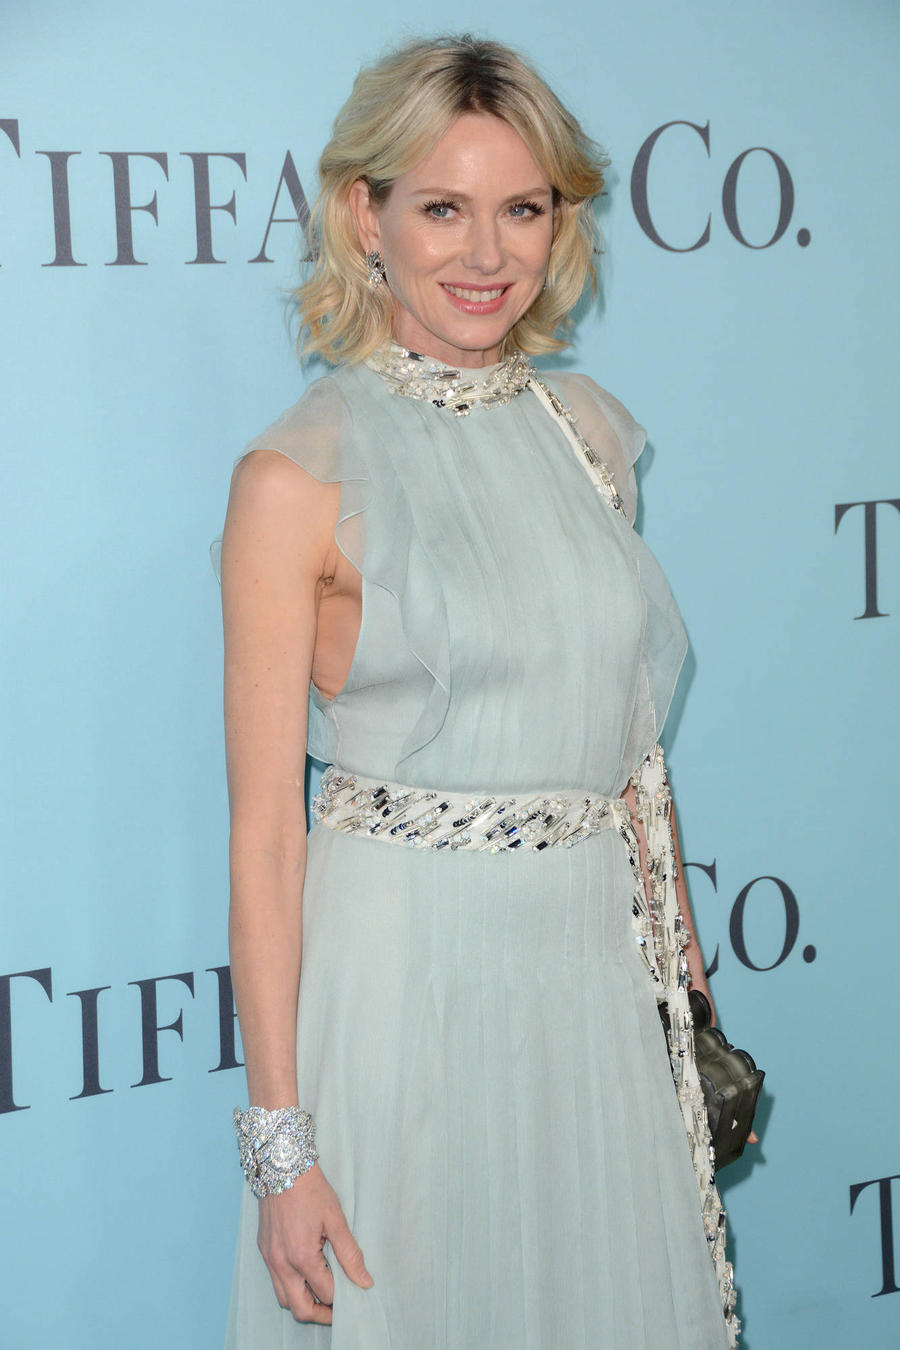 Naomi Watts Returning To Tv Roots For New Netflix Series